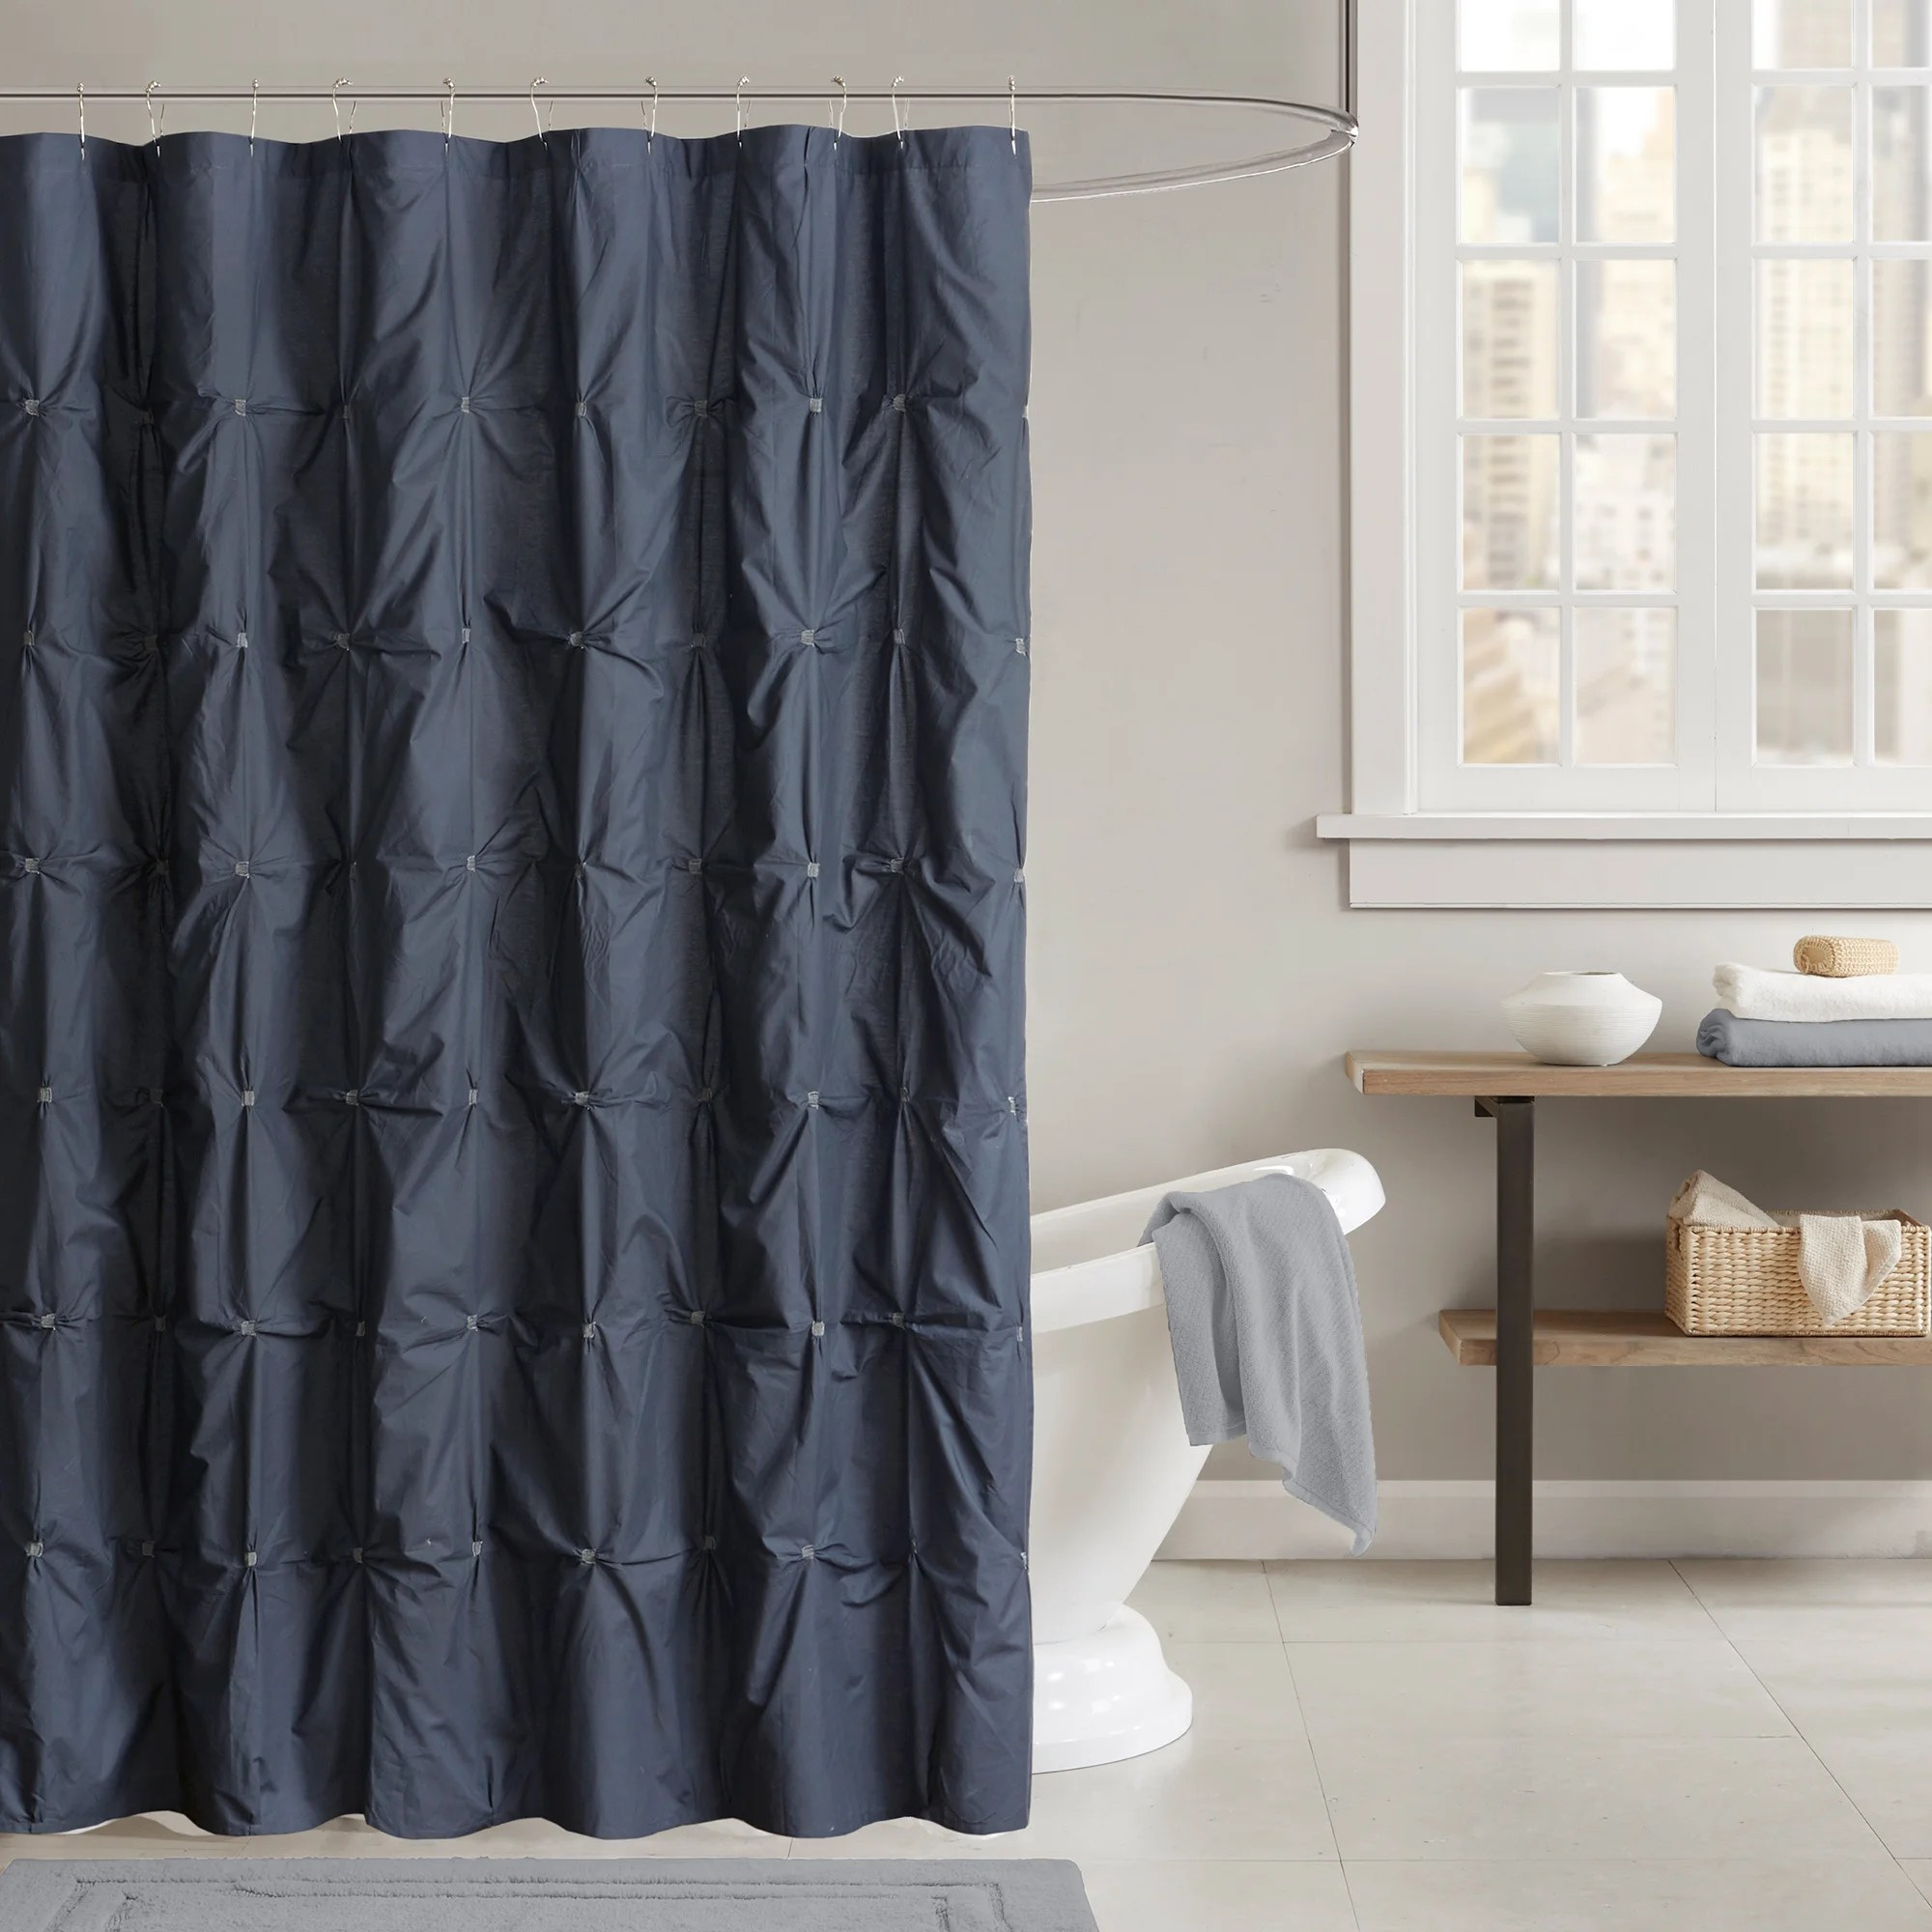 Buy Shower Curtains Online Buy Blue Pintuck Shower Curtains Online At Overstock Our